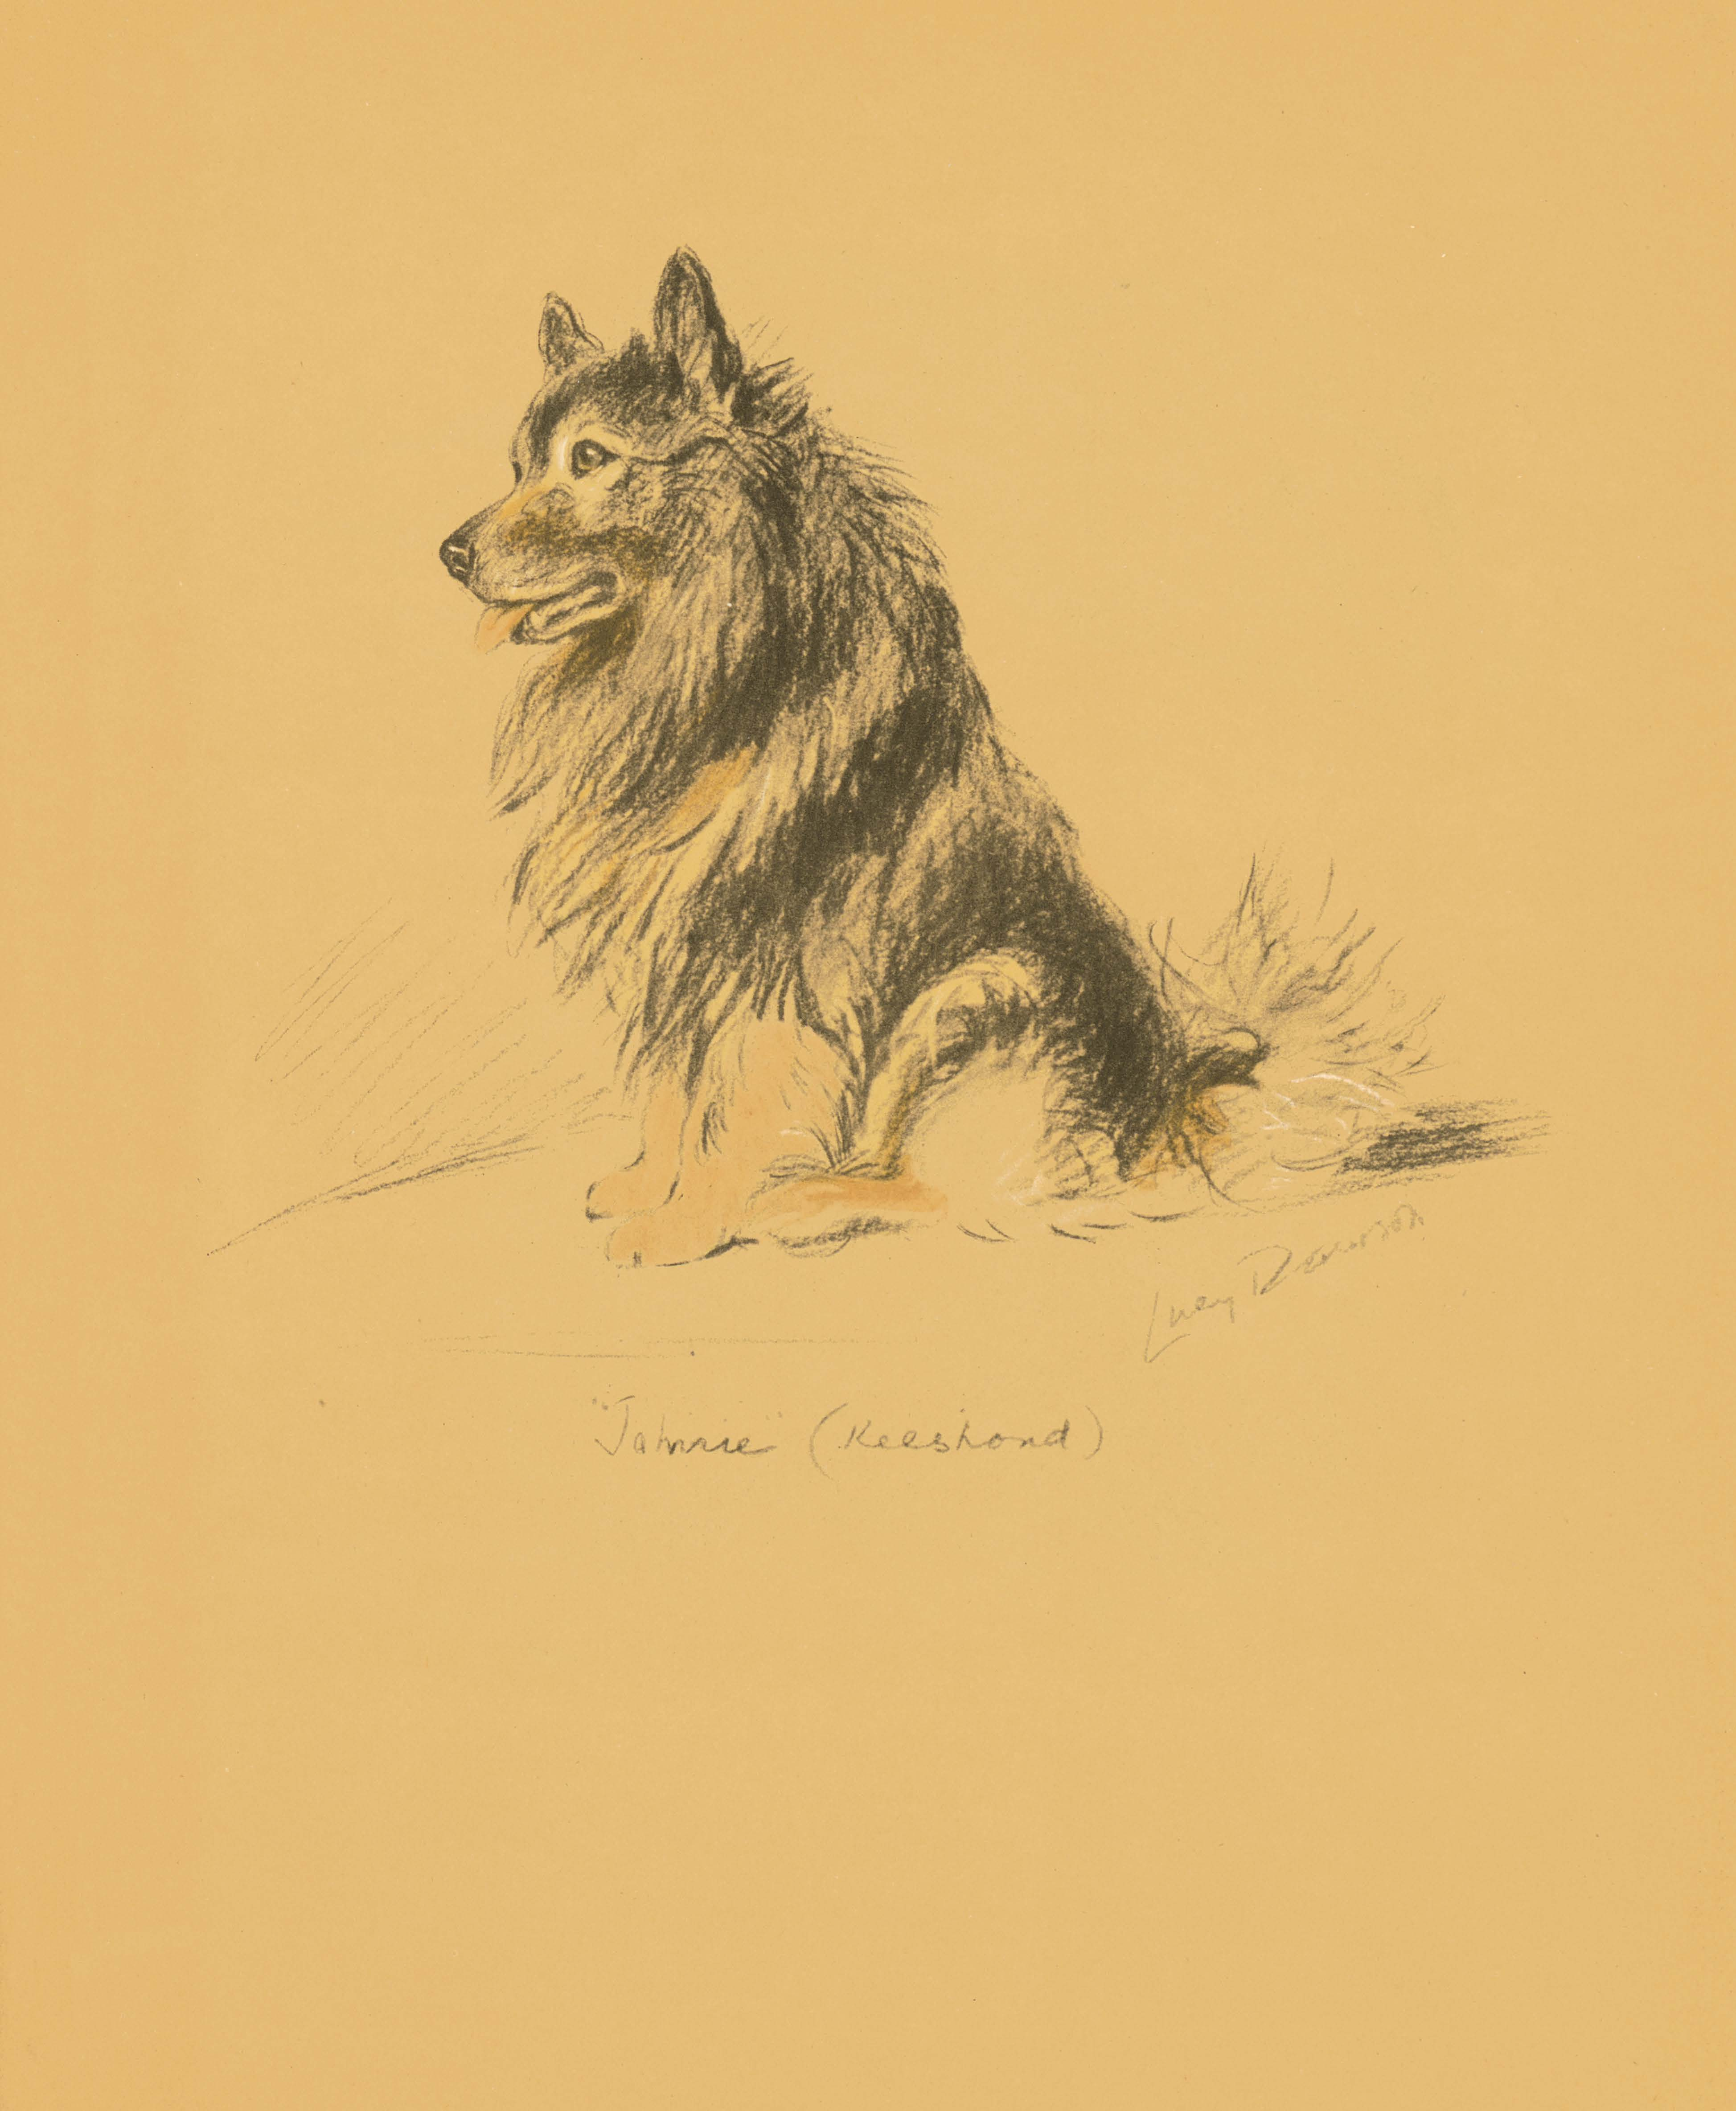 """Johnnie"" (Keeshond) (c) Lucy Dawson from Dogs Rough and Smooth"